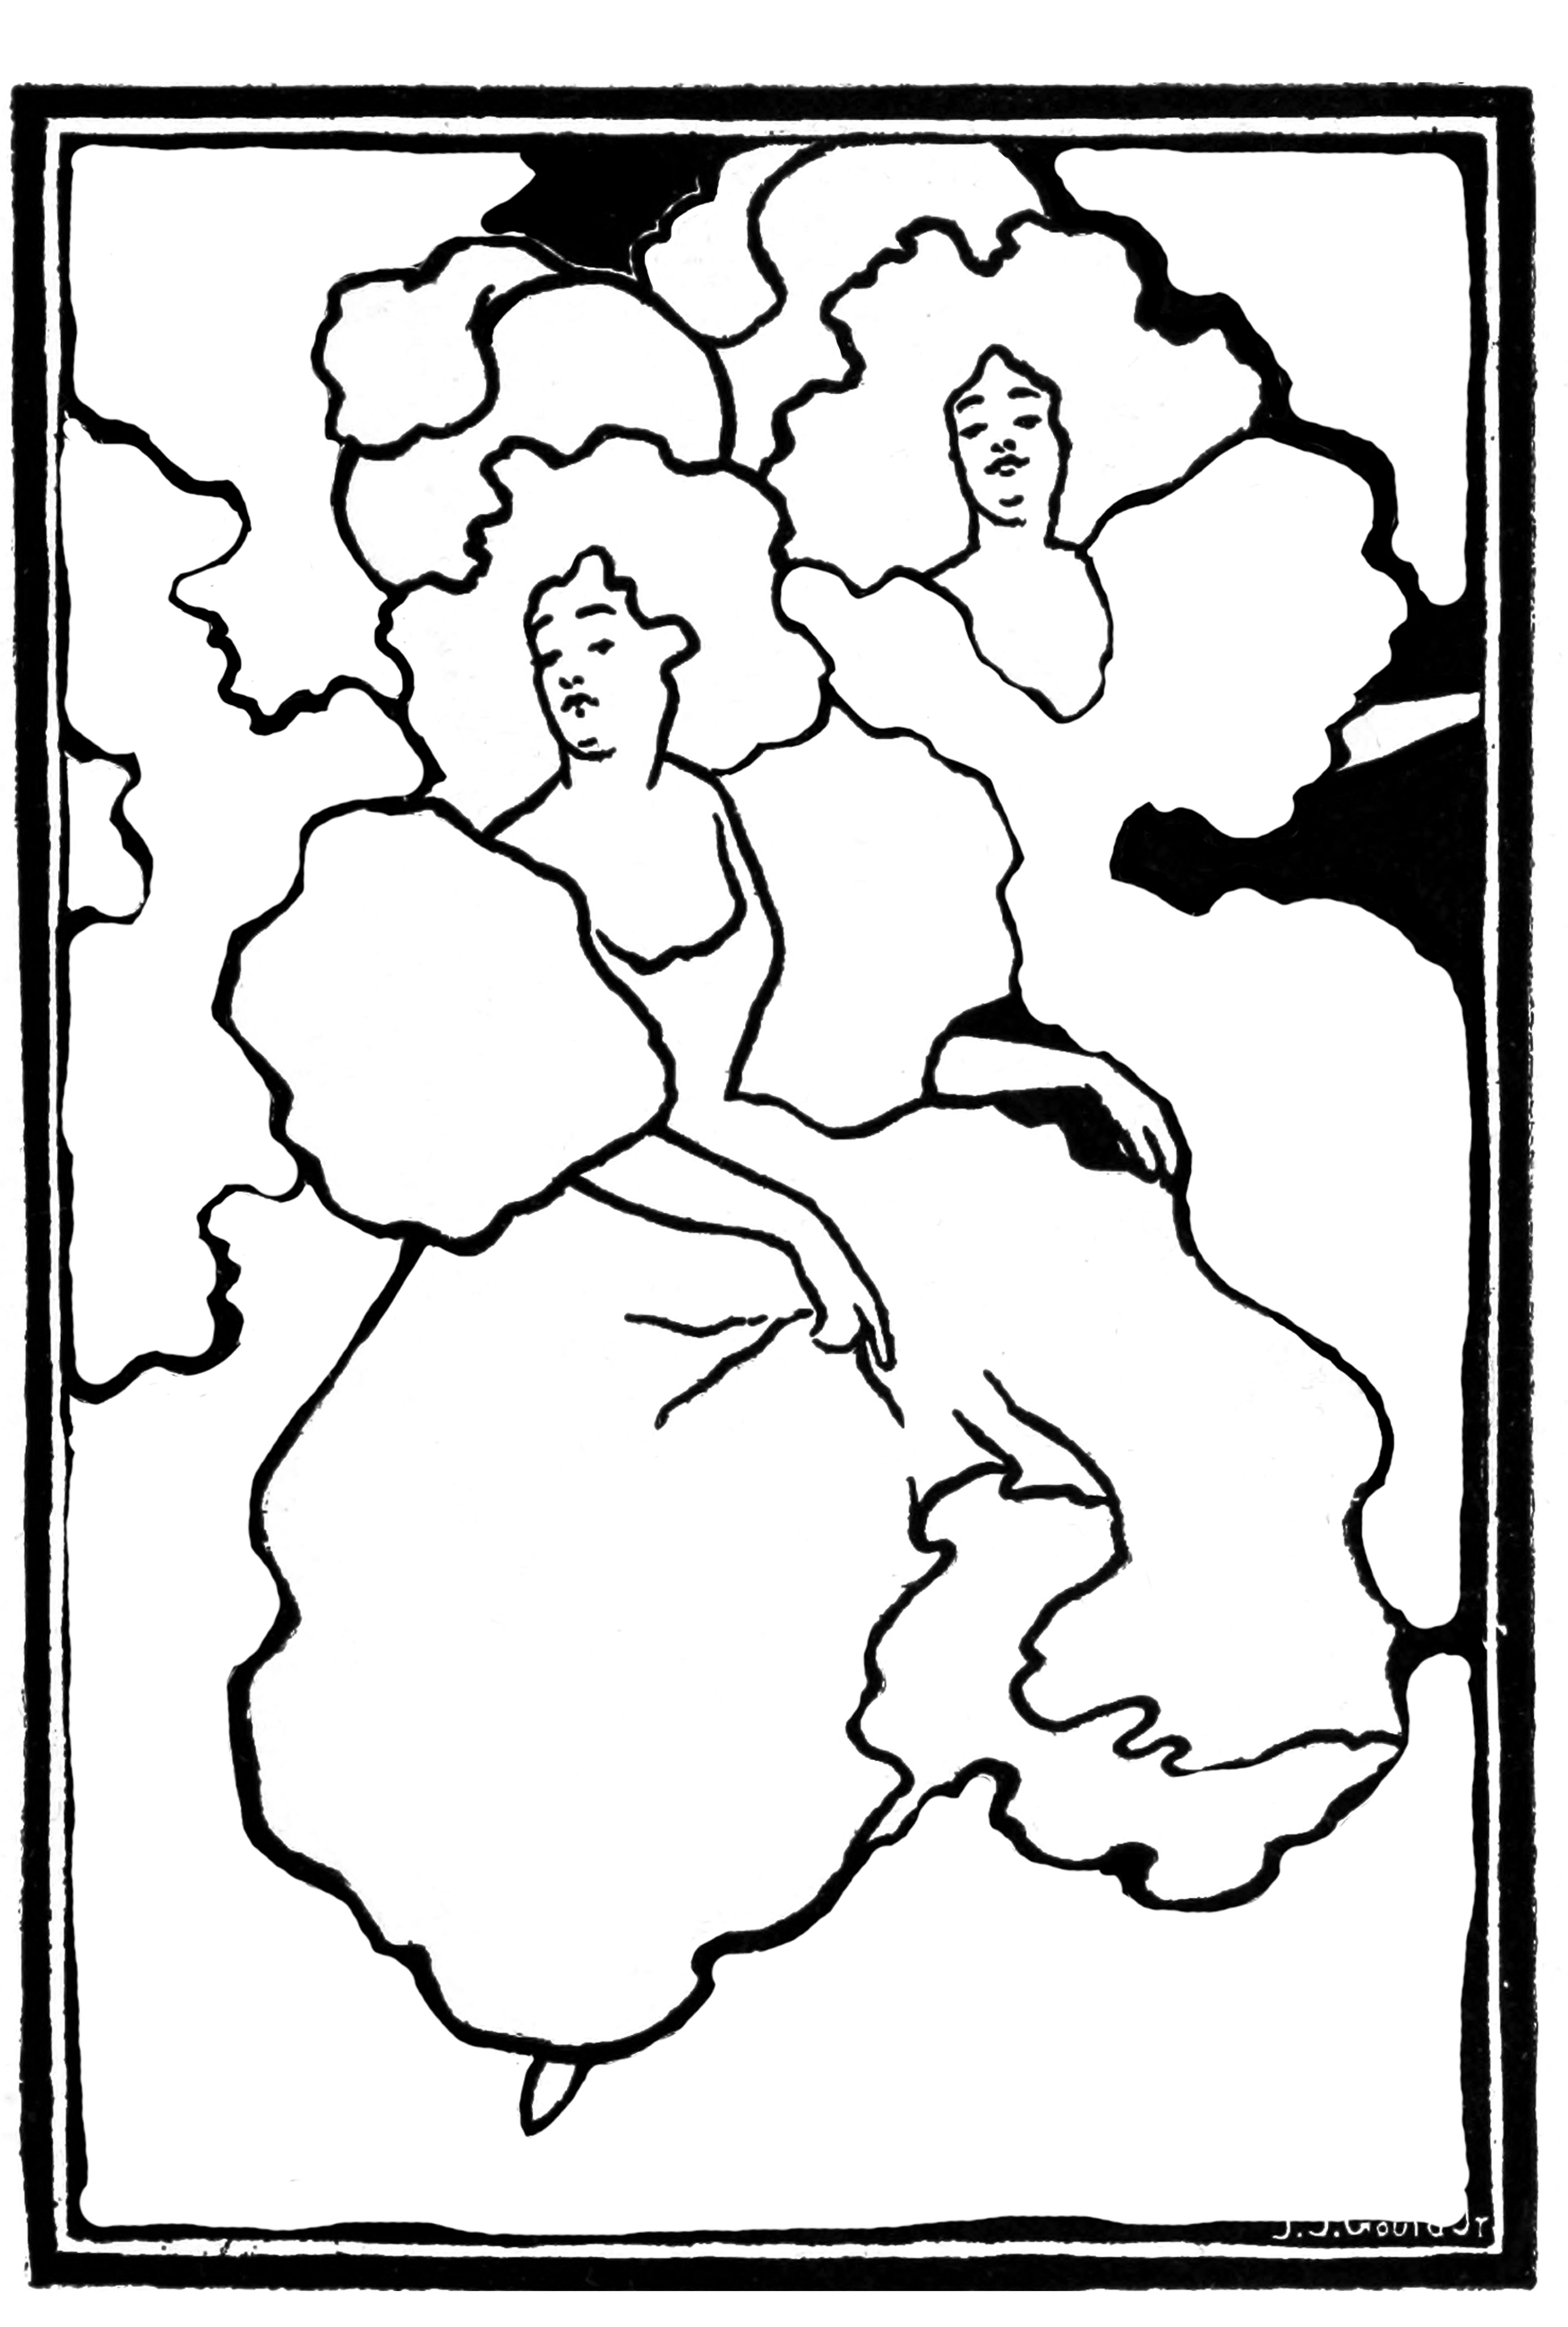 Cancan dacers coloring page